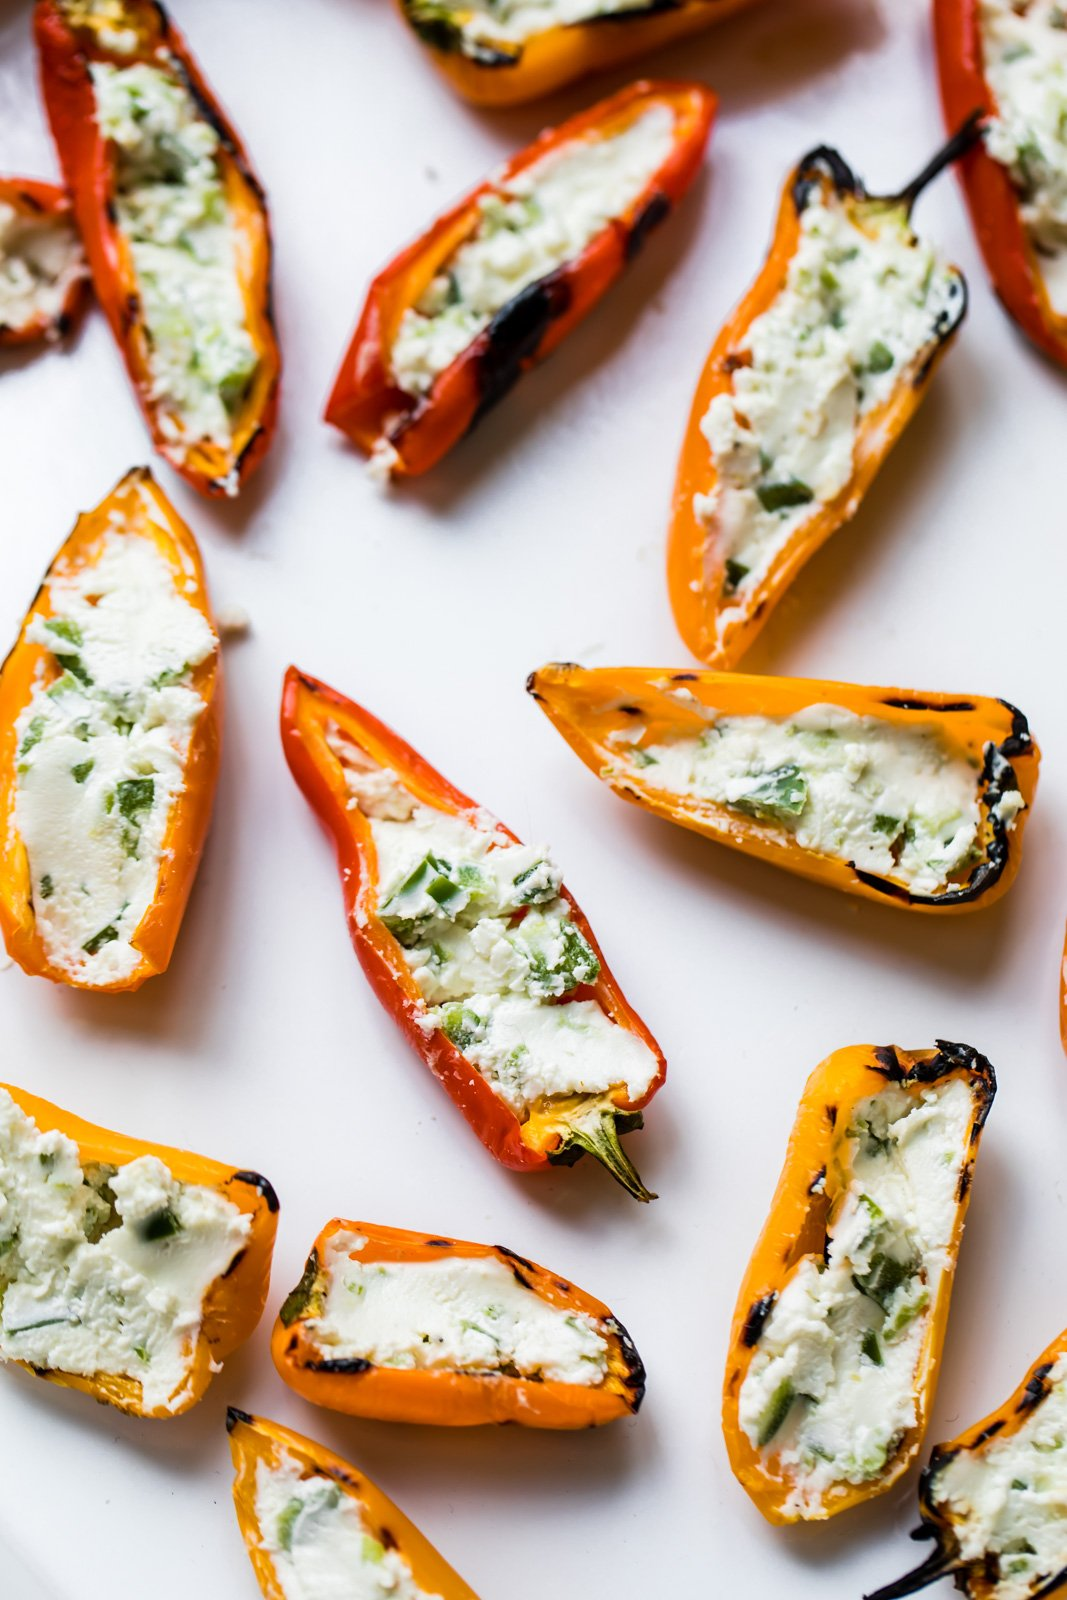 Grilled stuffed mini peppers that are both easy and delicious. This vegetarian appetizer is made with only 3 ingredients -- goat cheese, jalapeños and mini peppers!